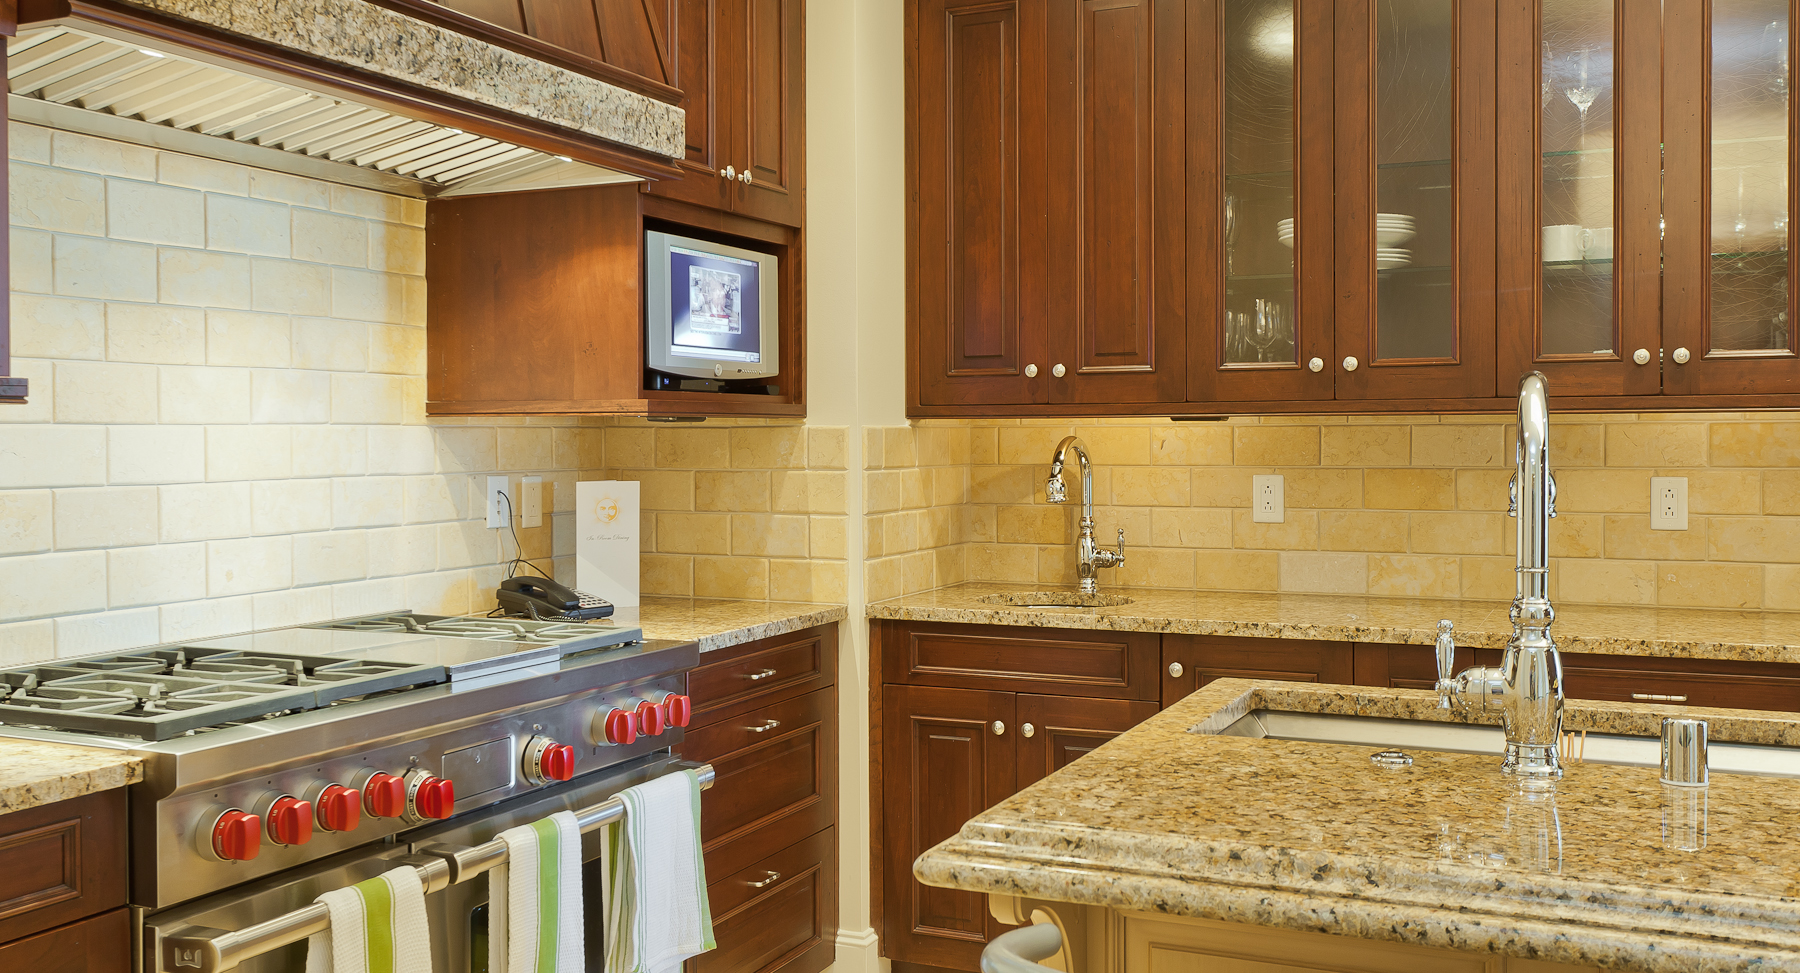 Kitchen Design by Jean Liu for The Residences Dallas Condos